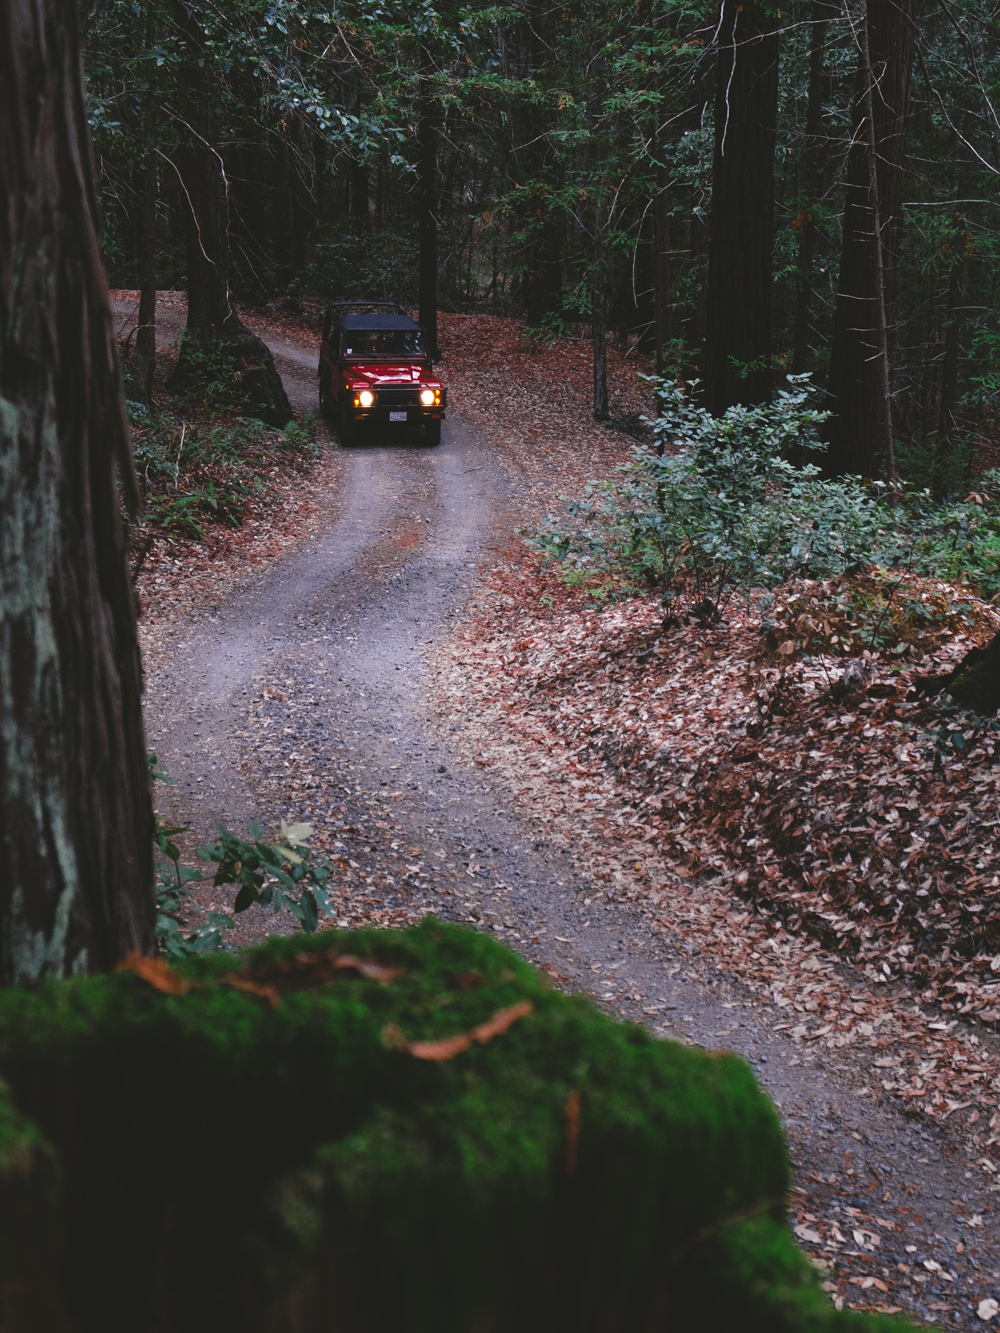 Land_Rover-Defender-Cookwilltravel-Huckberry.jpg